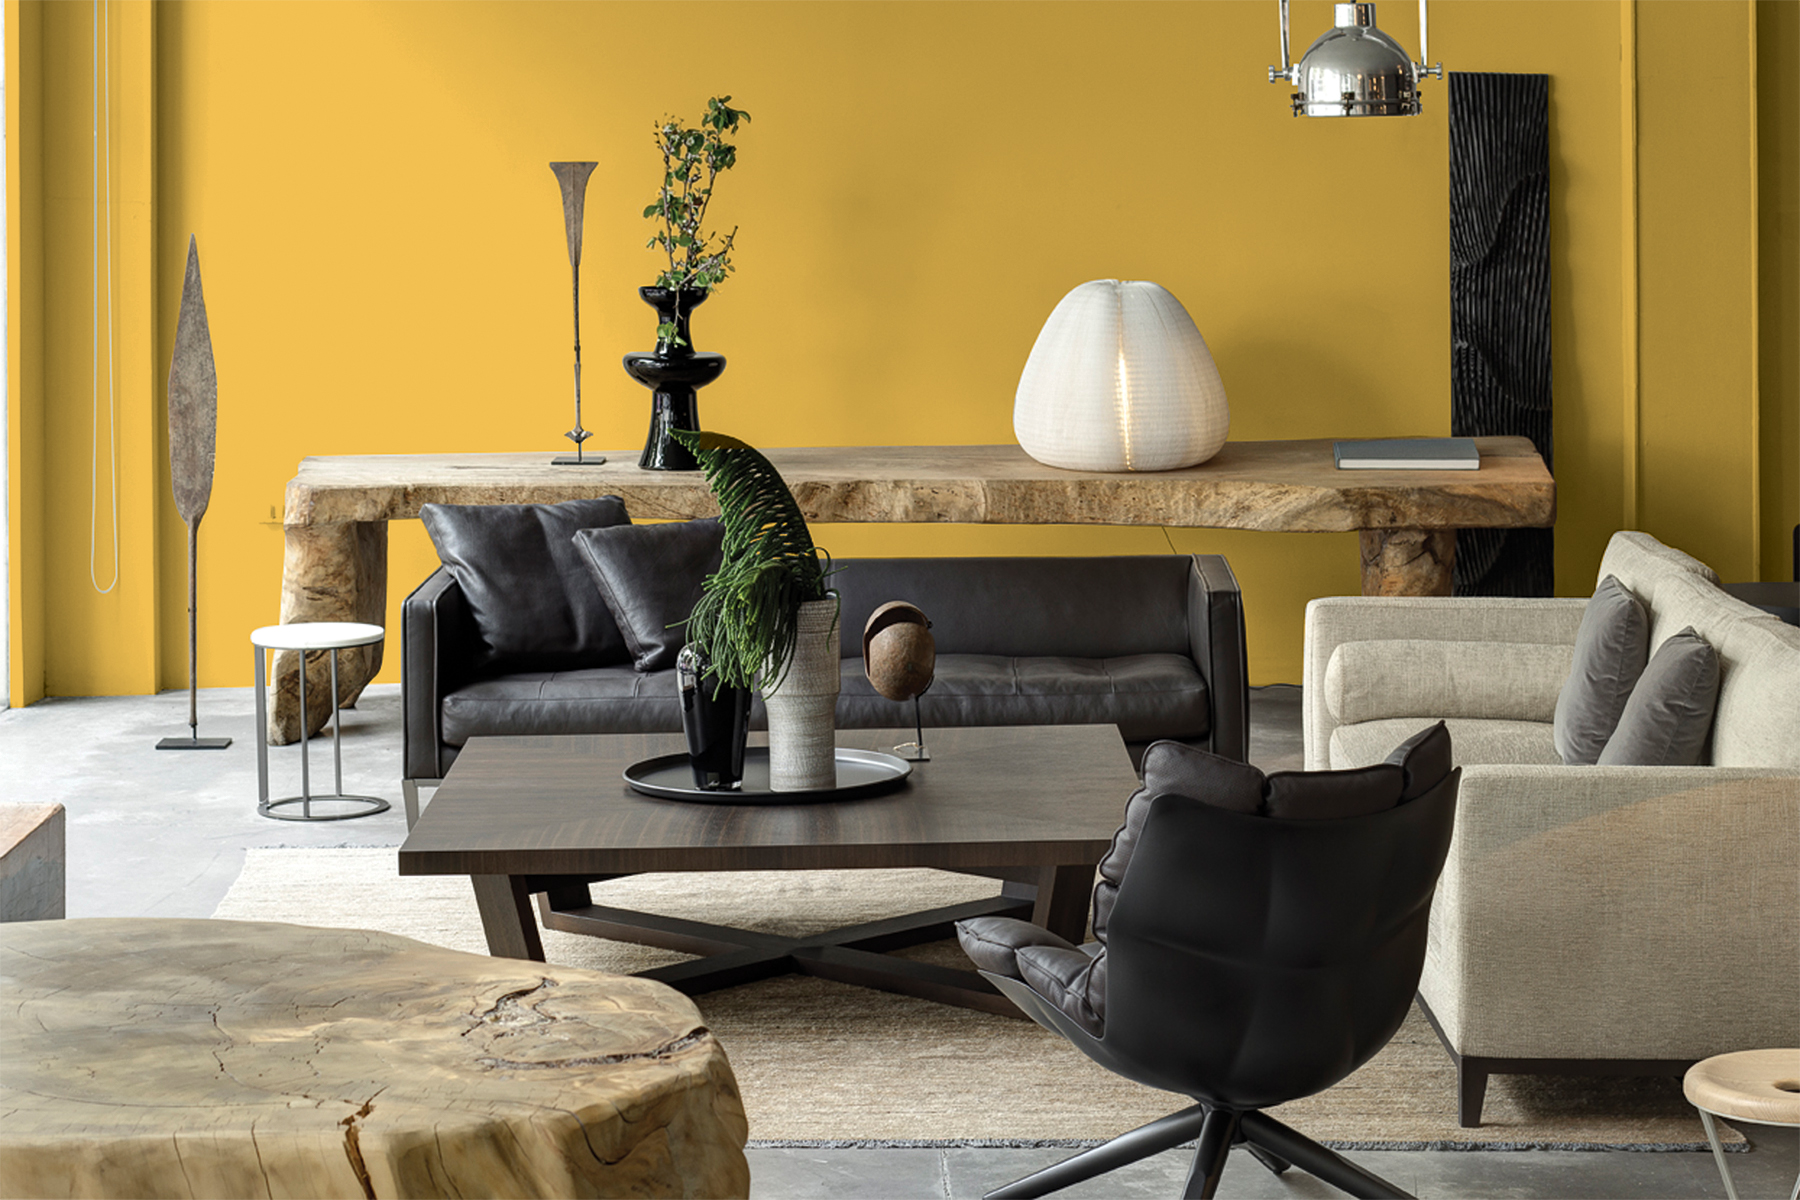 Grey Sofa Teal Walls Sico Going For Gold, While Dulux Has Dreamy Visions For 2016